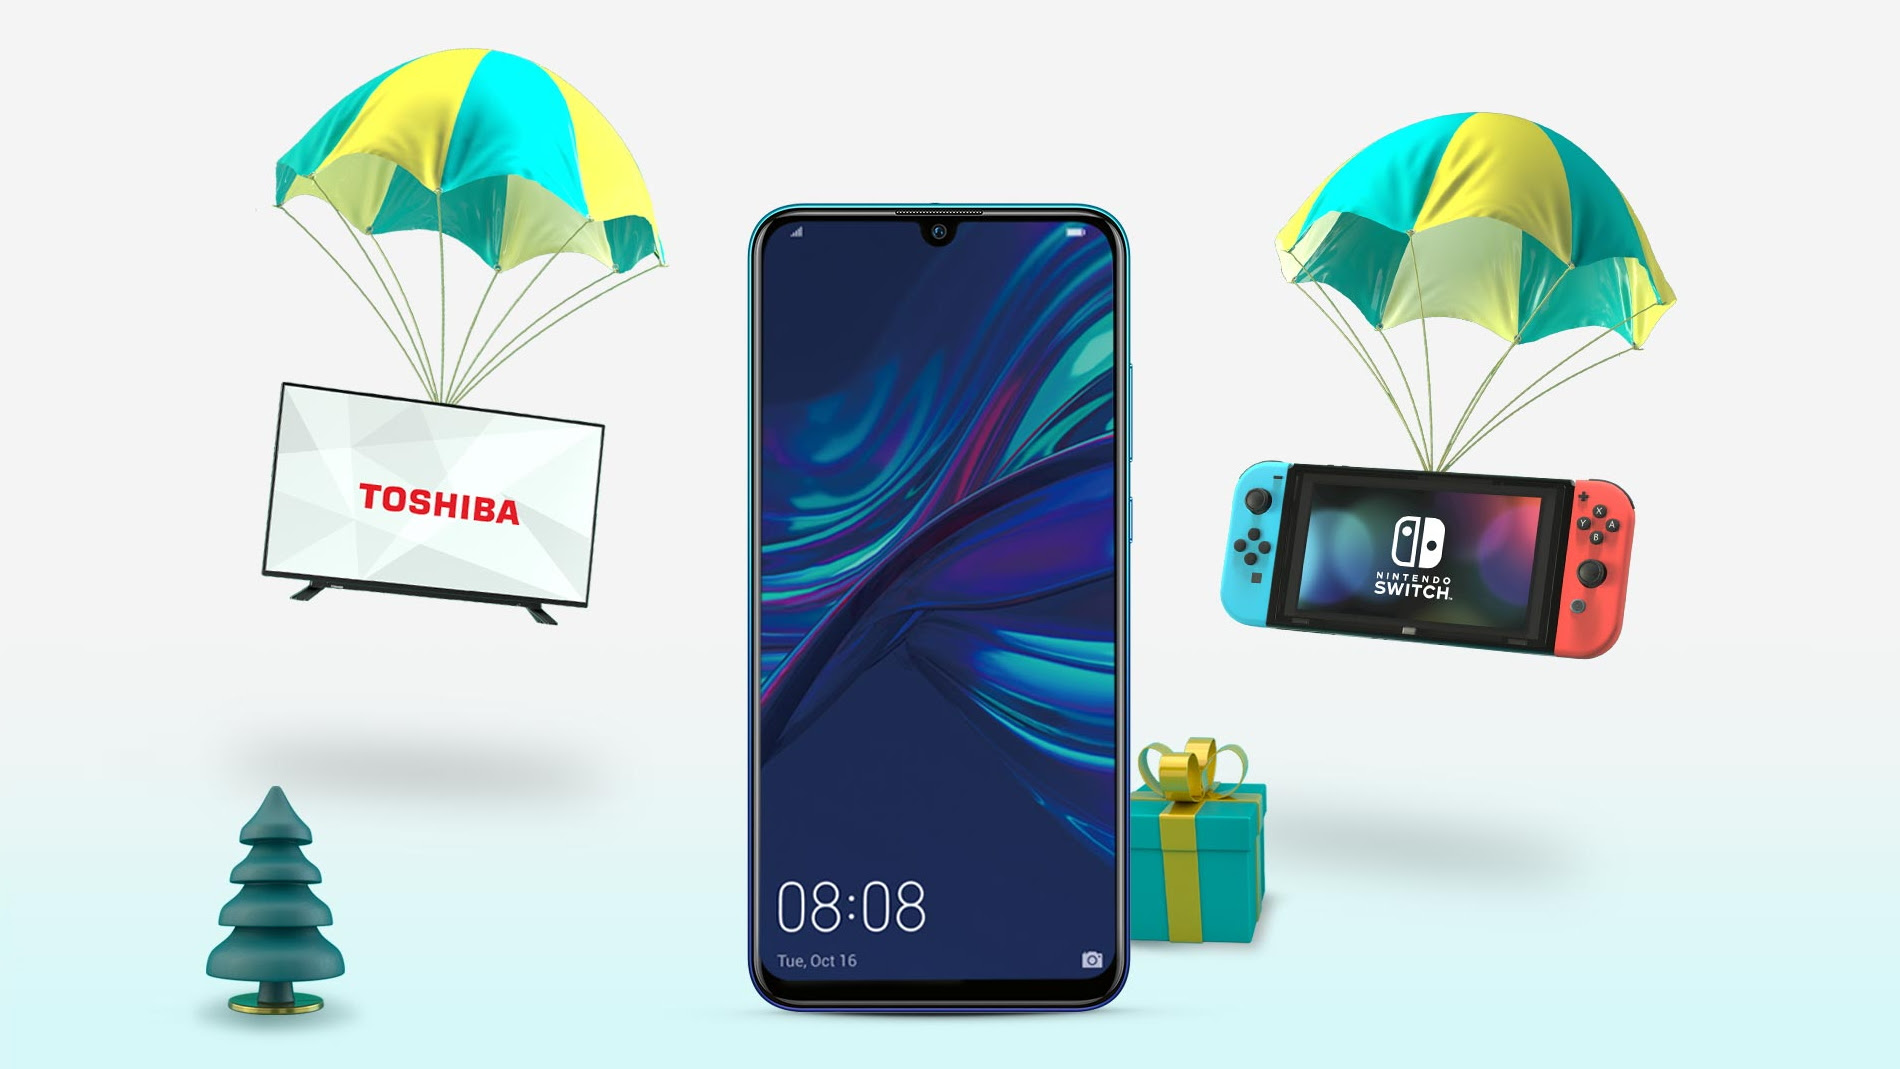 EE Black Friday bargain: £28/pm for a 2019 Huawei phone deal and free Nintendo Switch